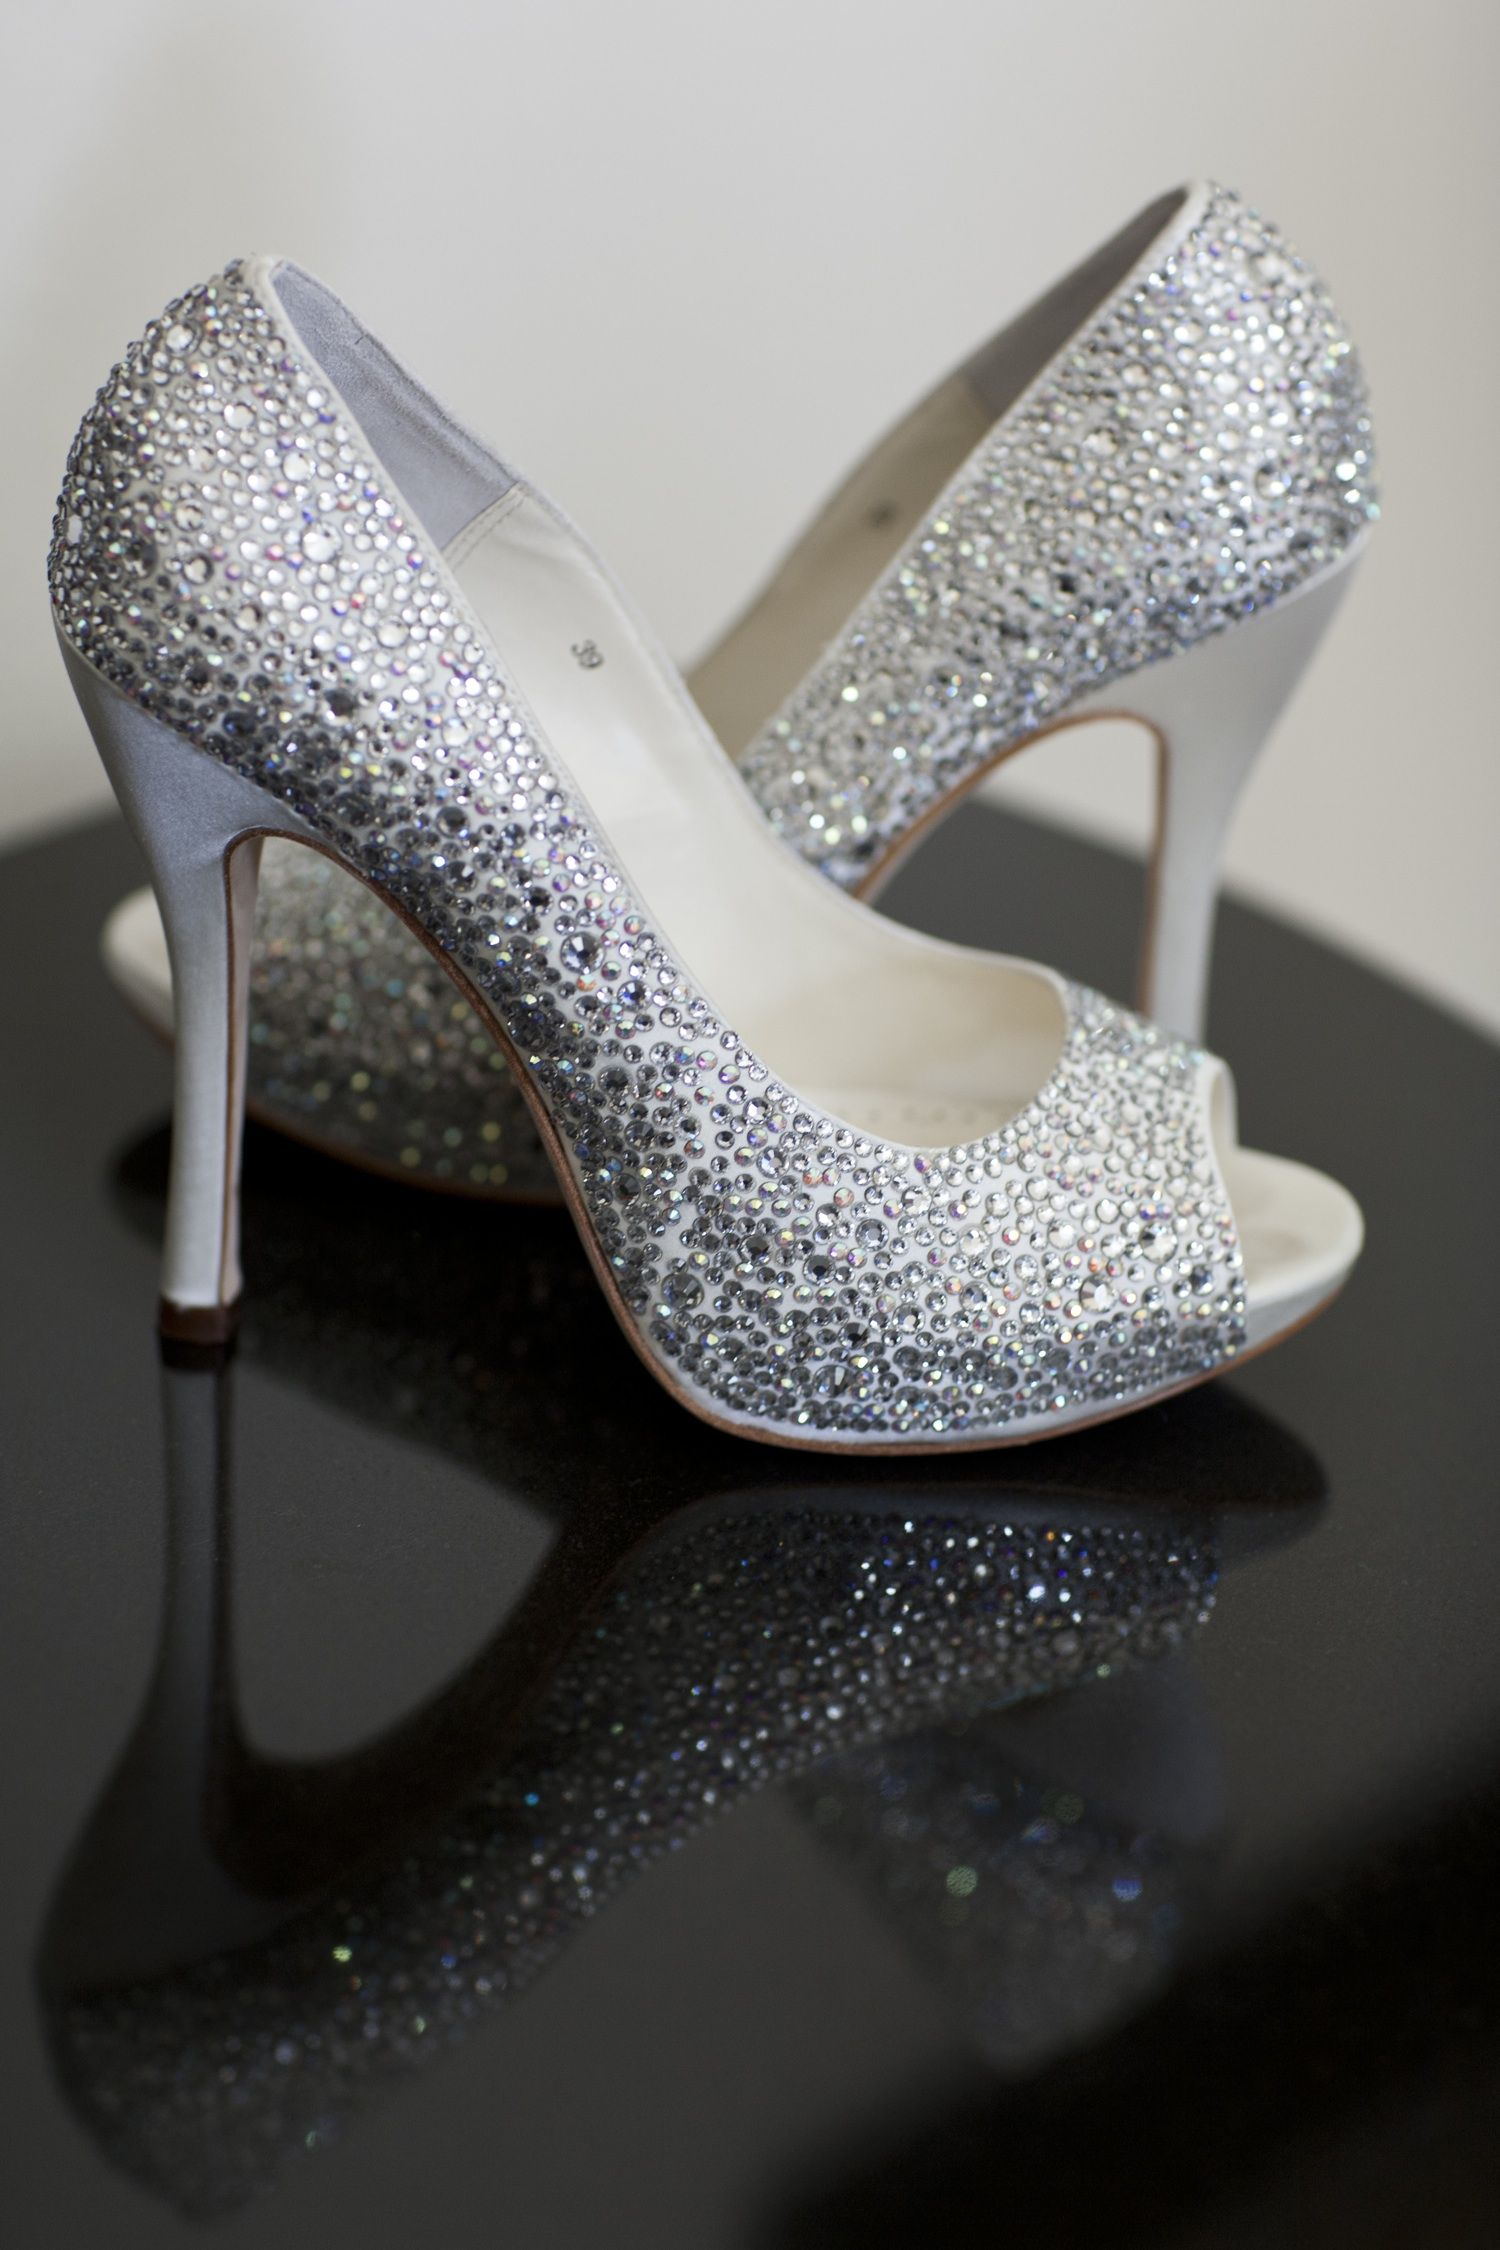 Images of Crystal Bridal Shoes - Weddings Pro